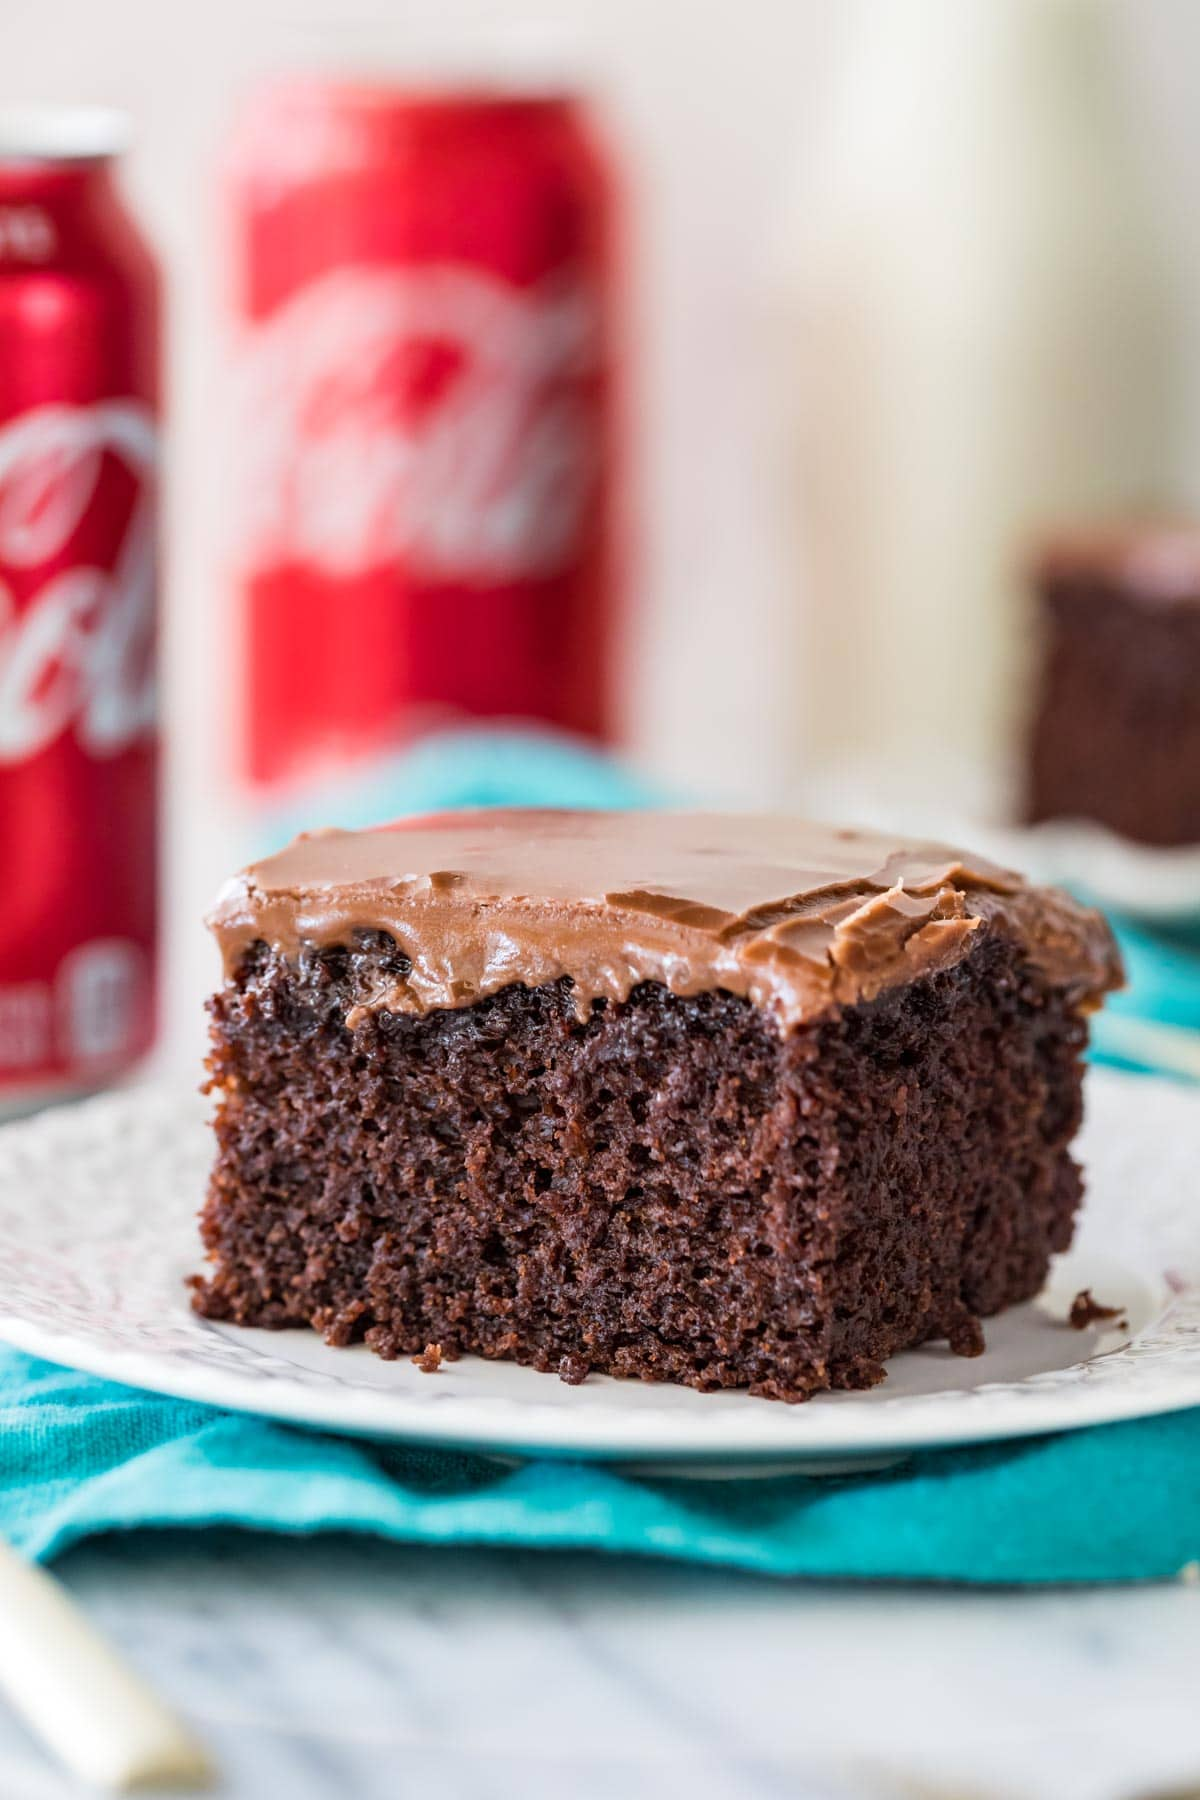 Close-up view of square piece of coca cola cake on white plate